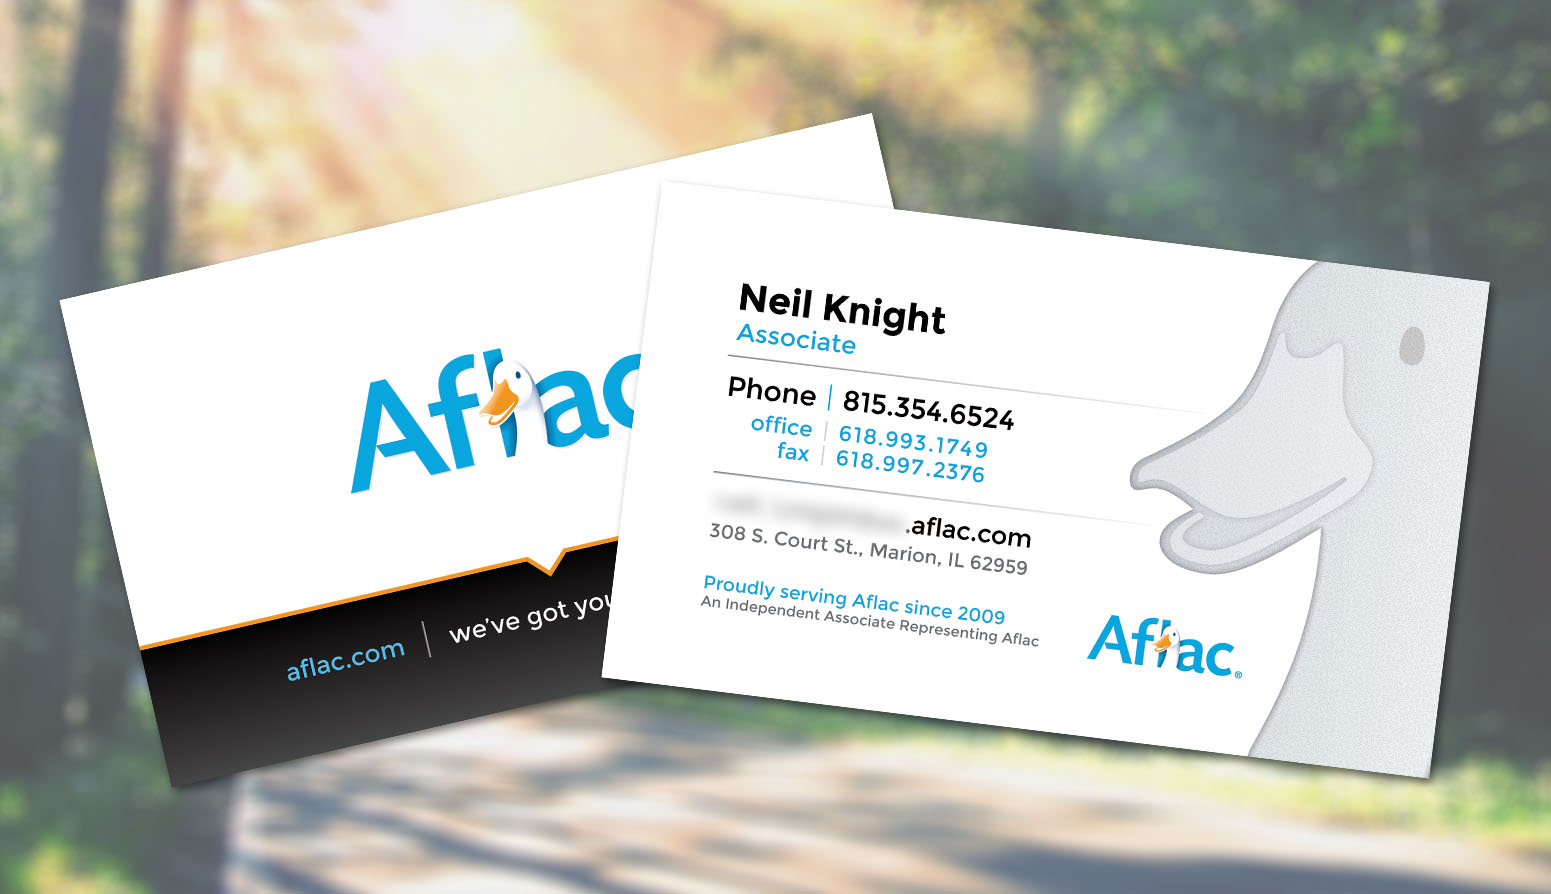 Outstanding aflac business cards adornment business card ideas unique aflac business cards picture collection business card ideas reheart Image collections